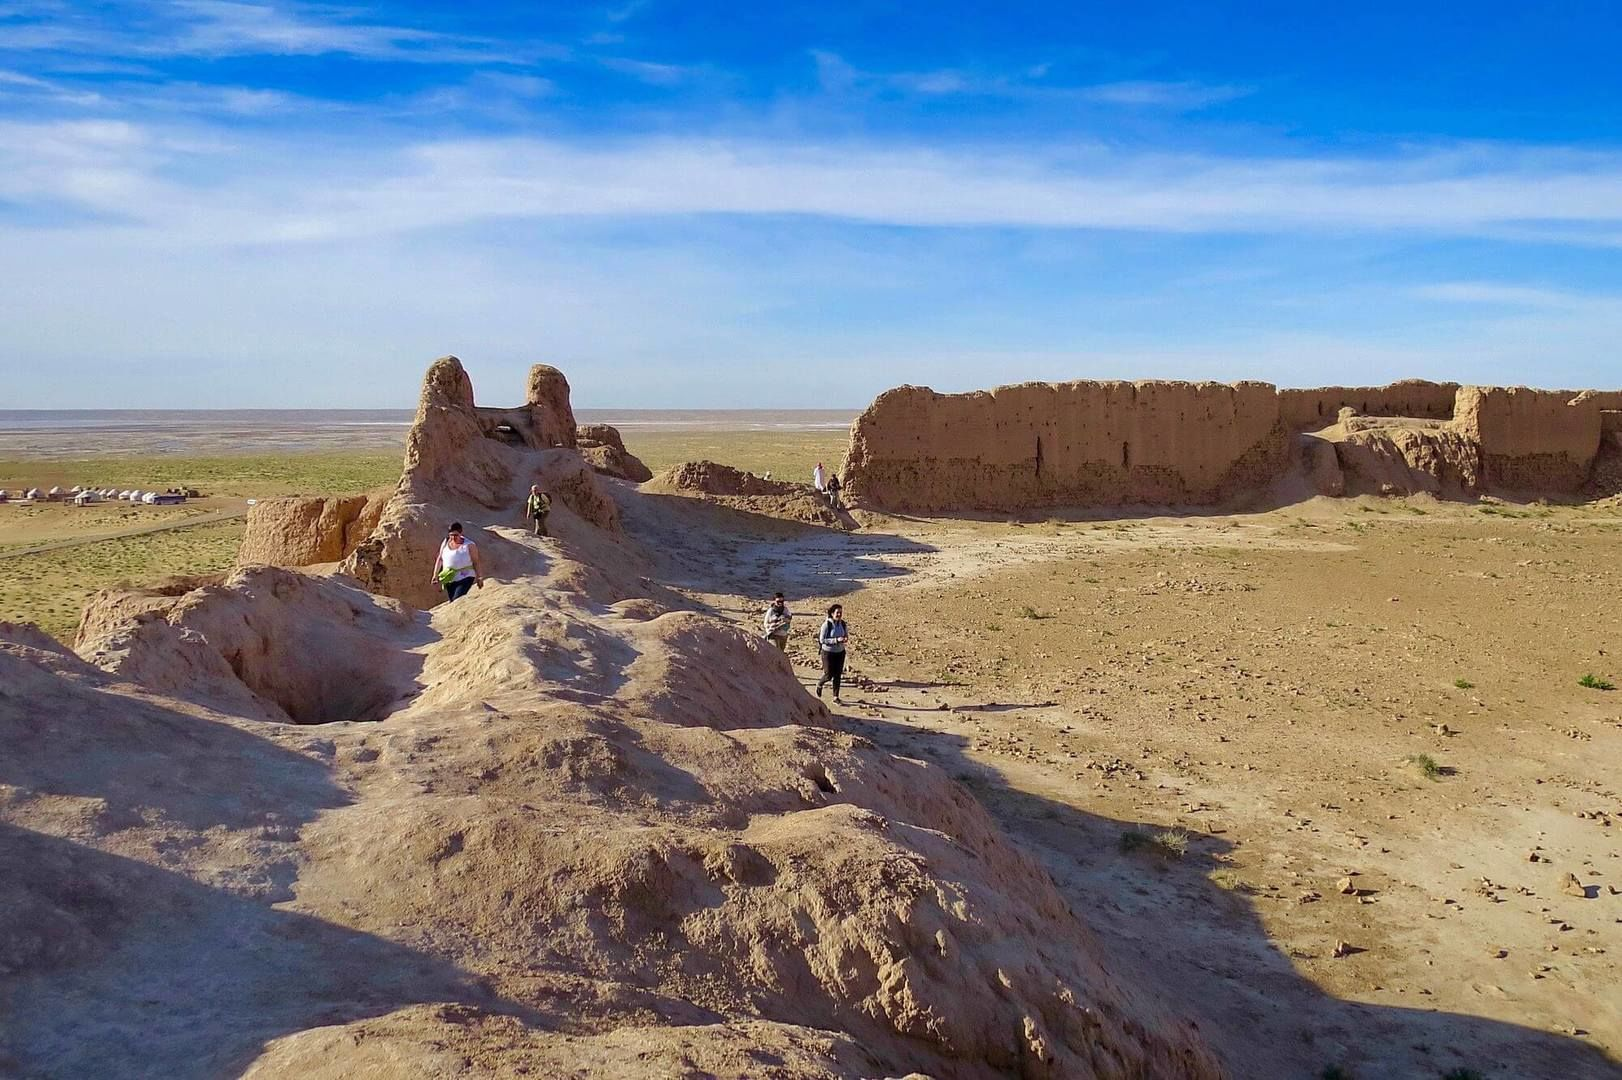 Ayaz Kala ruins in ancient Khorezm, region in Uzbekistan